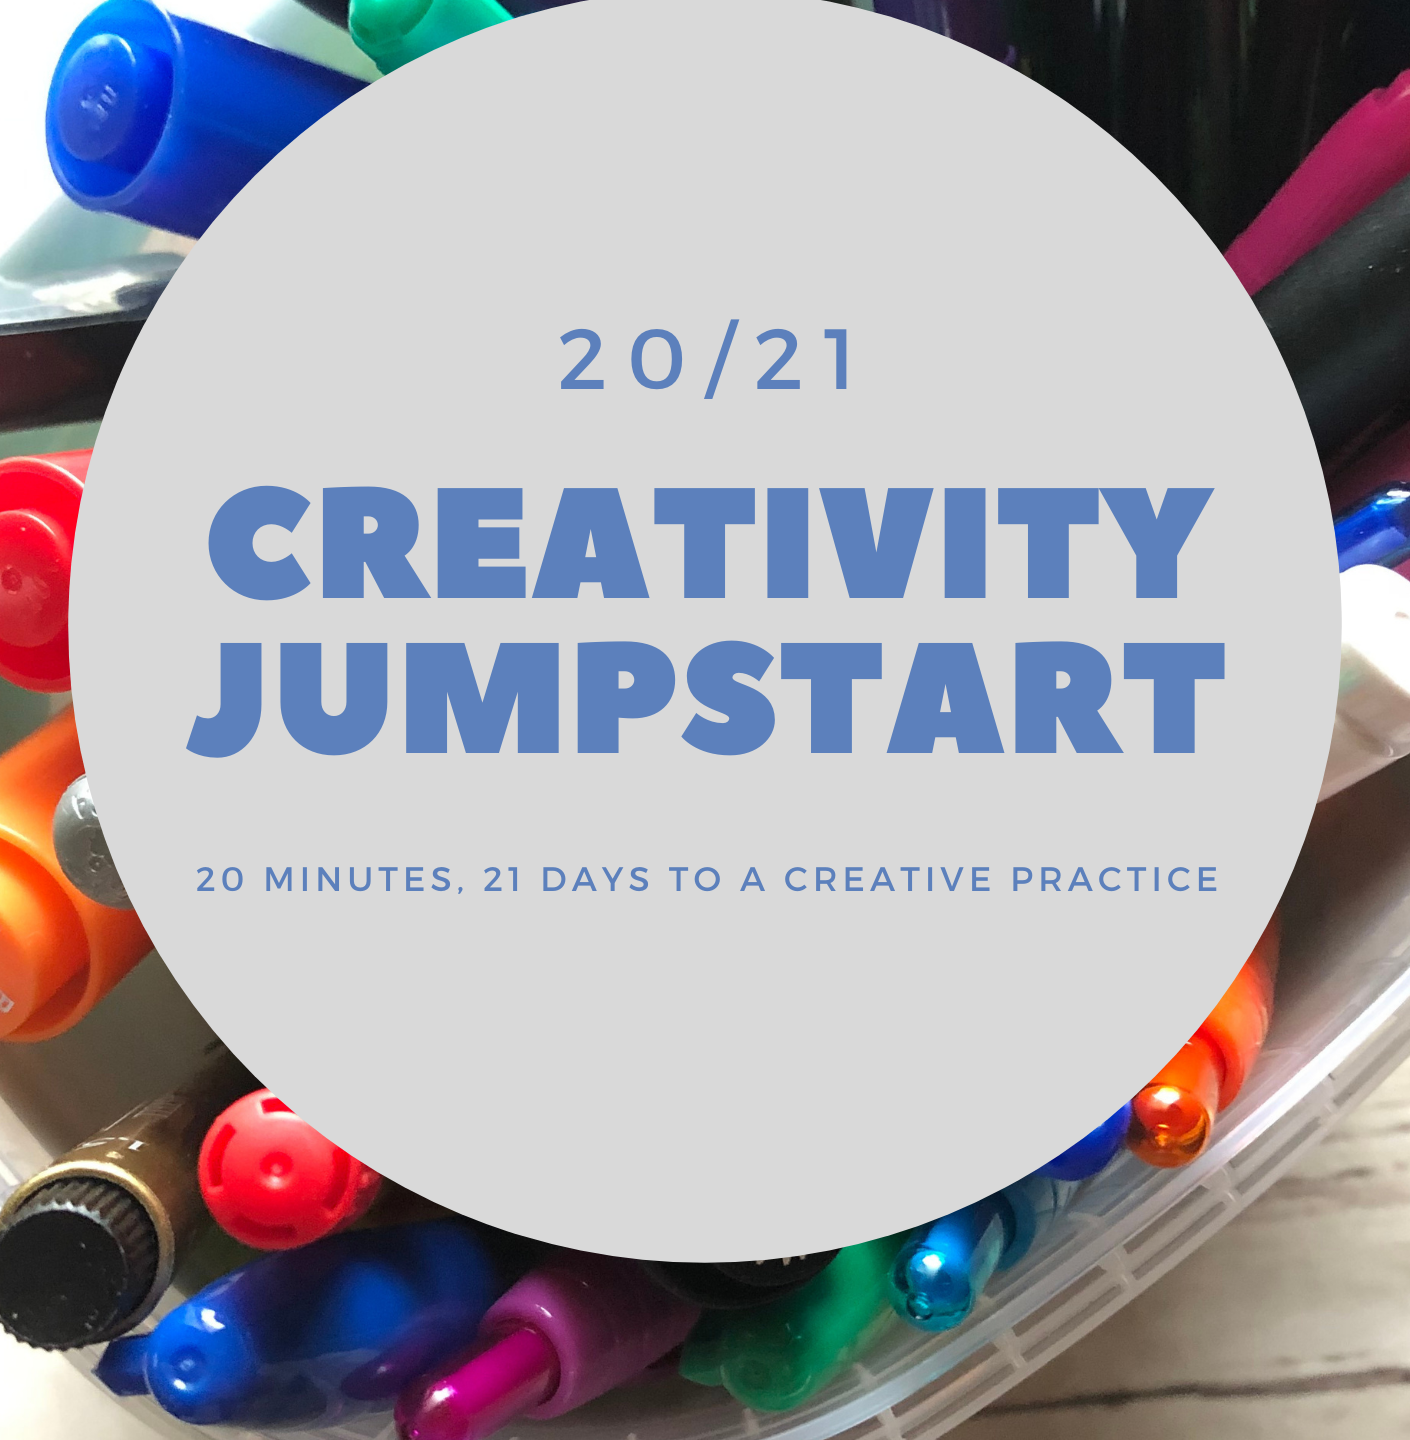 Need a Creative Boost? Try the 20/21 Creativity Jumpstart